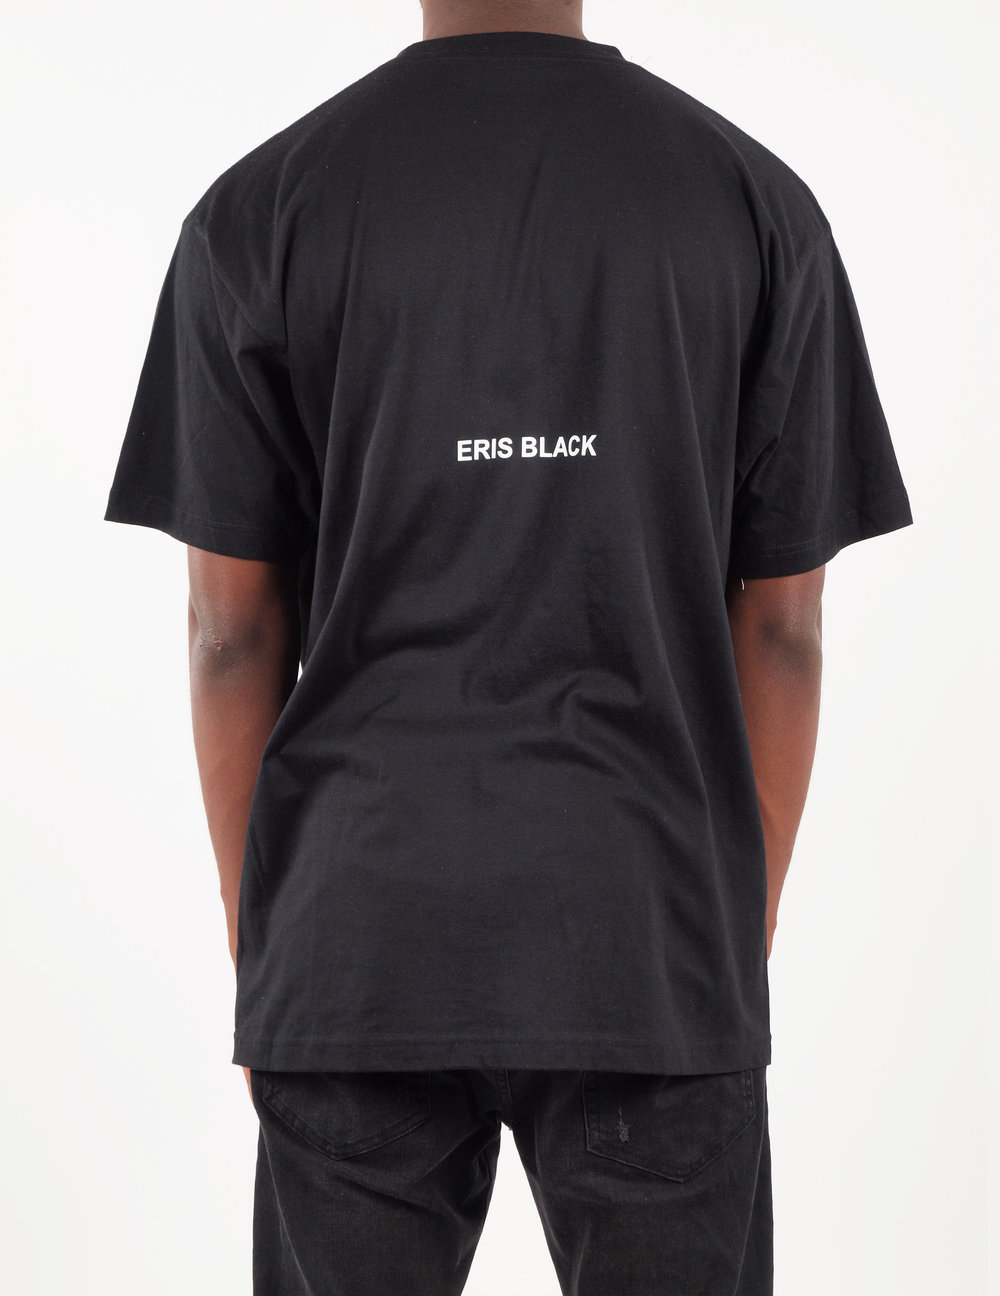 icons-tshirt-back.jpg